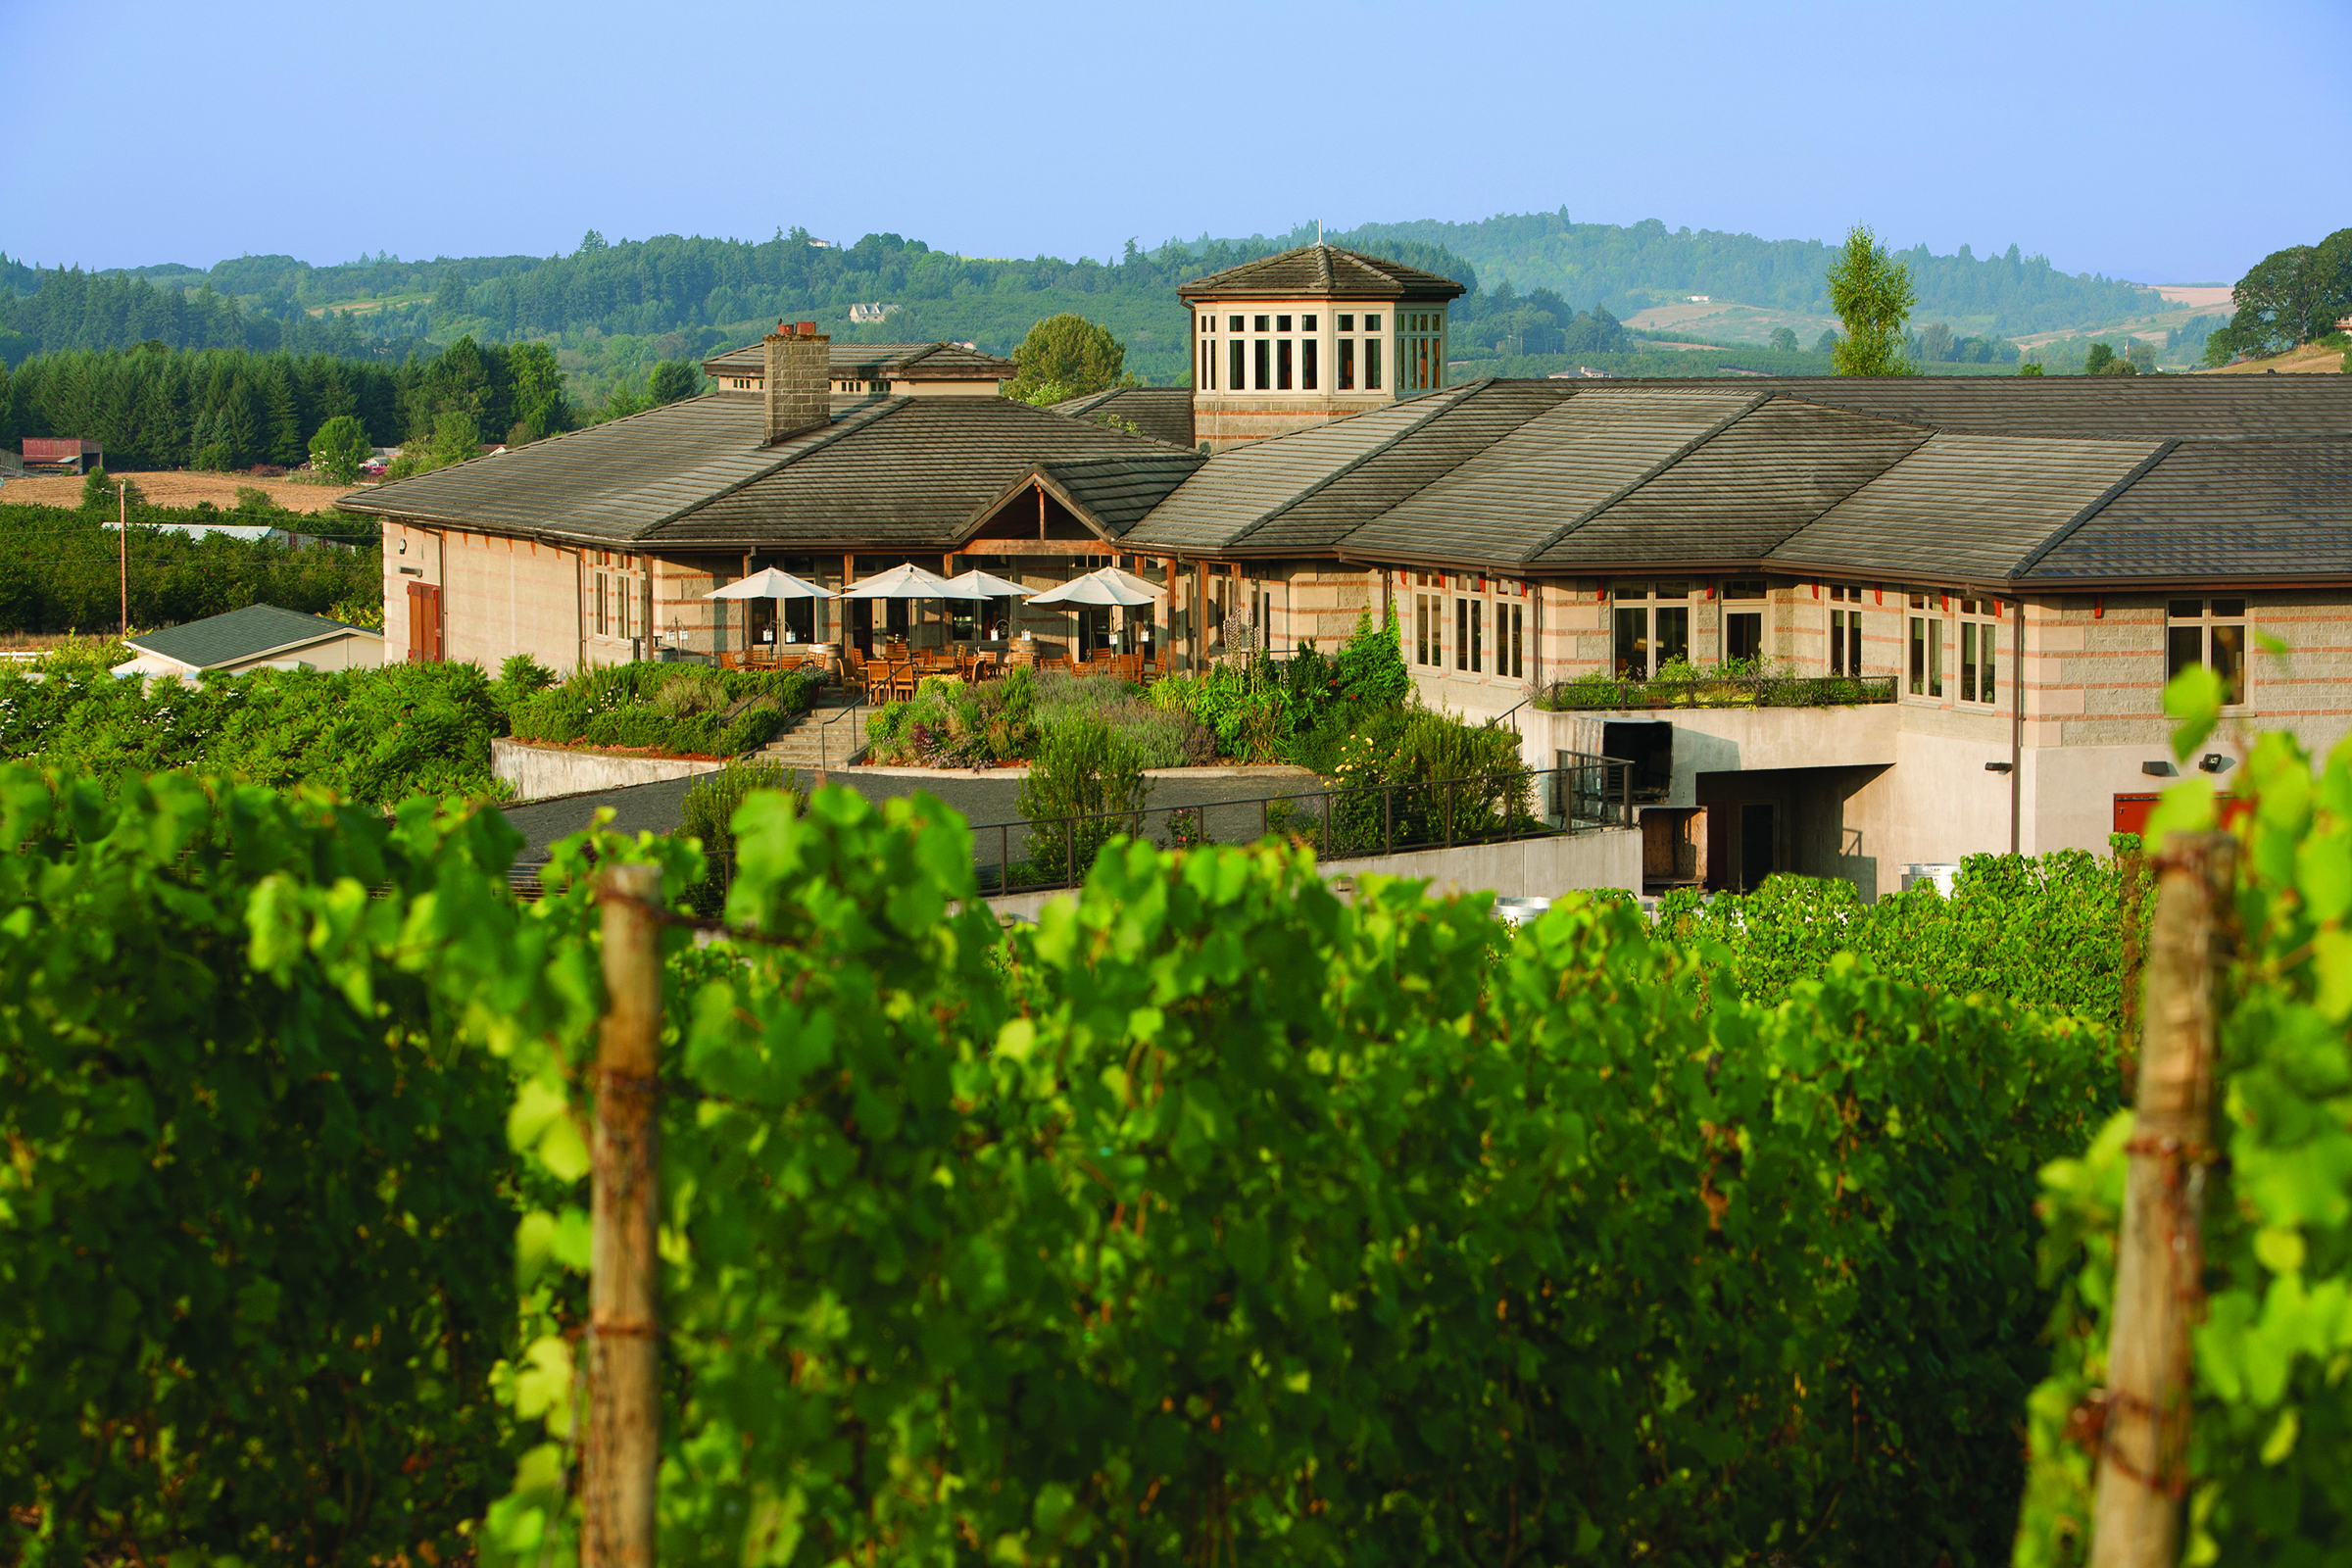 Outside view of Adelsheim Winery